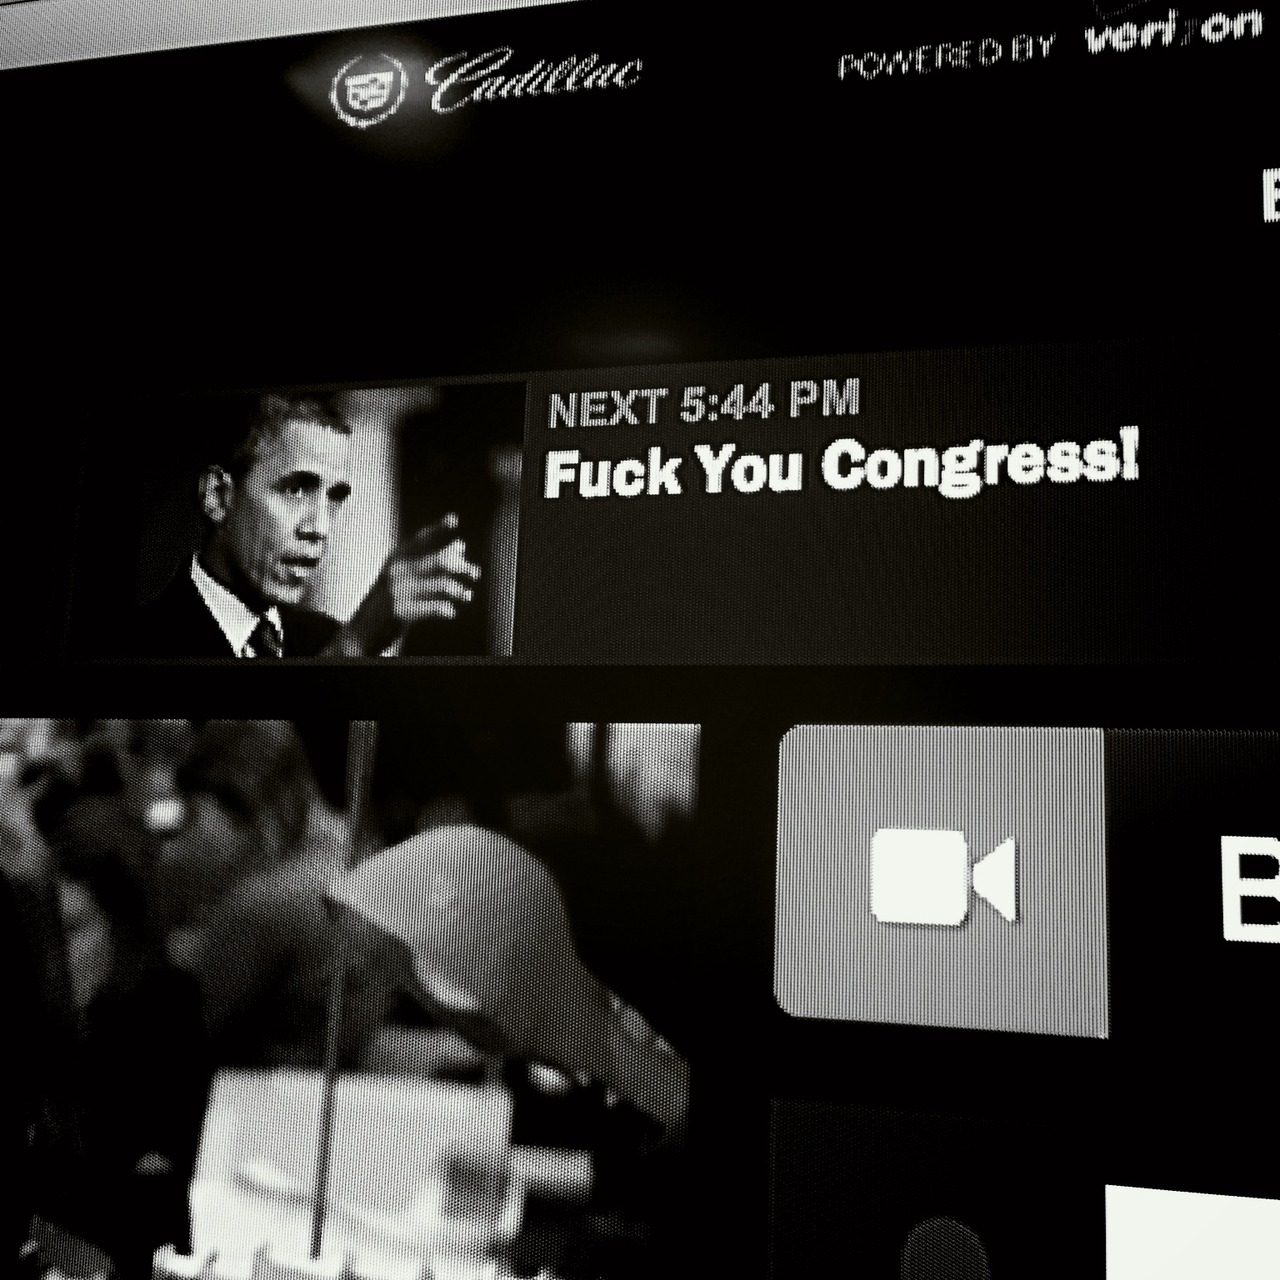 on @HuffPostLive 545p ET to discuss #FuckYouCongress site http://huff.lv/16S37kk http://fuckyoucongress.com – View on Path.